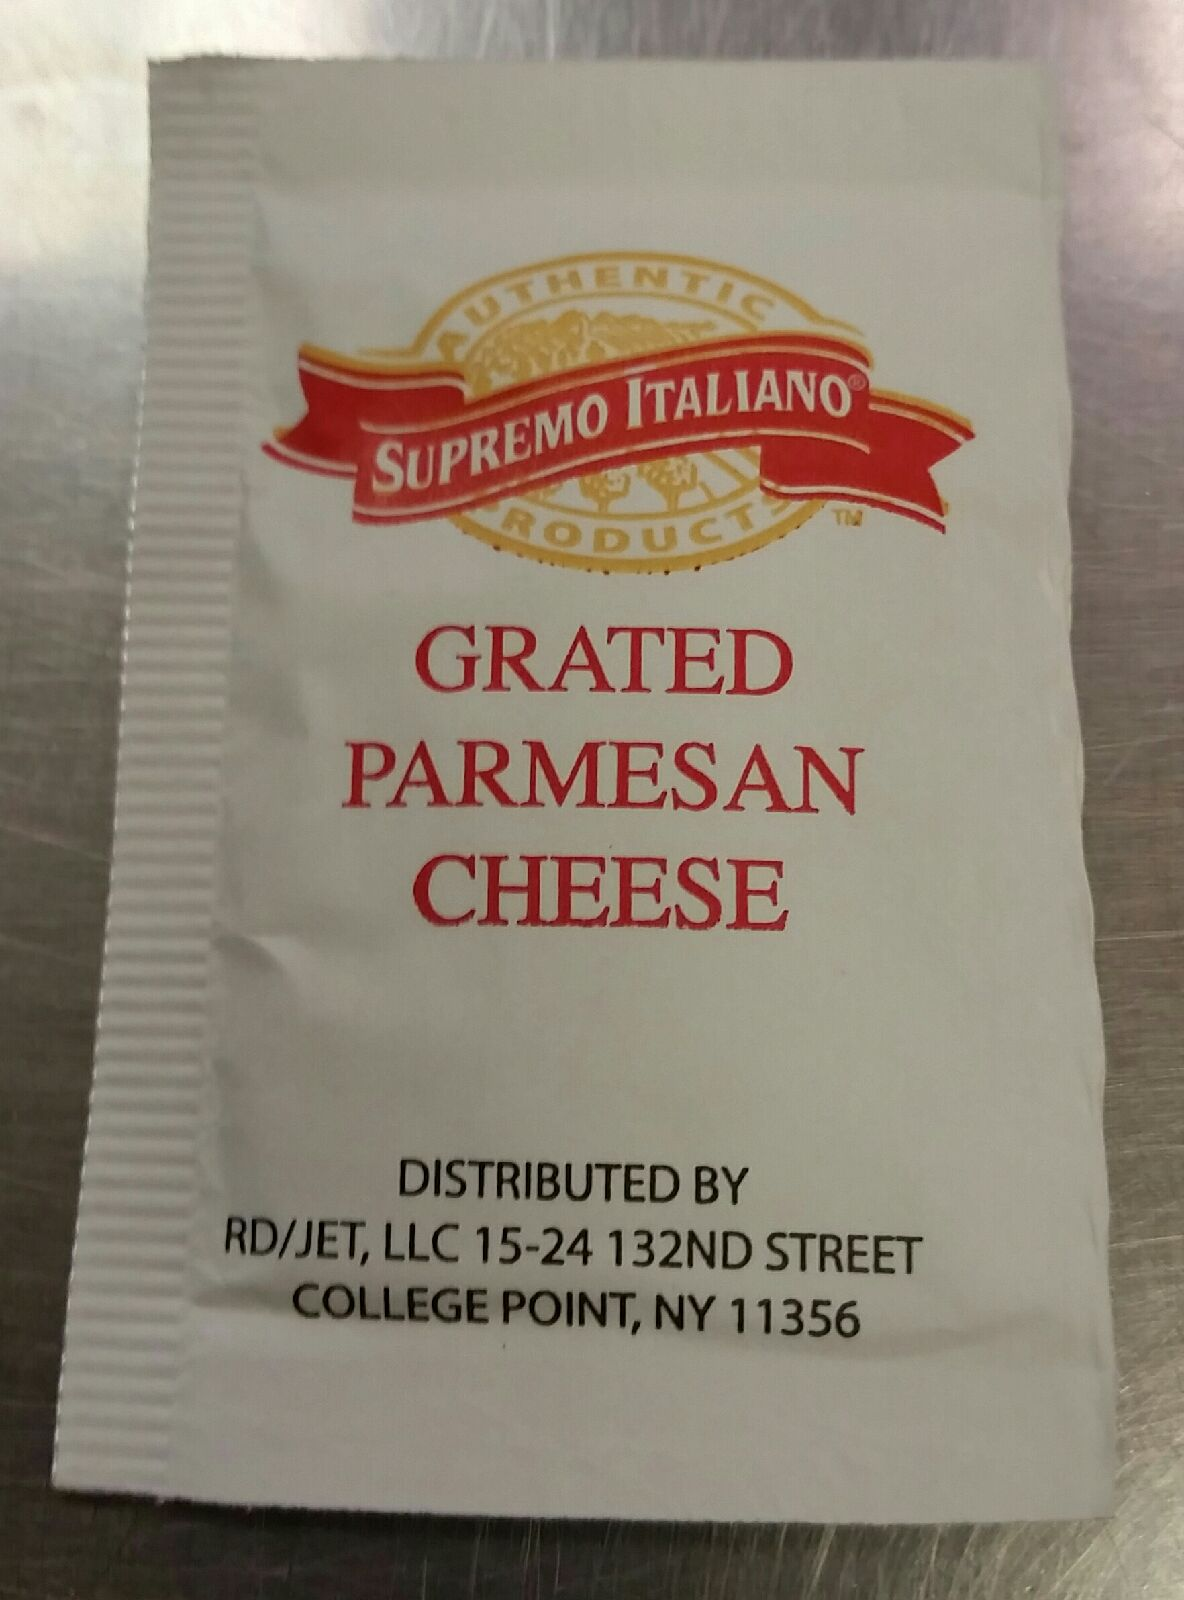 Parmesan Packet Image